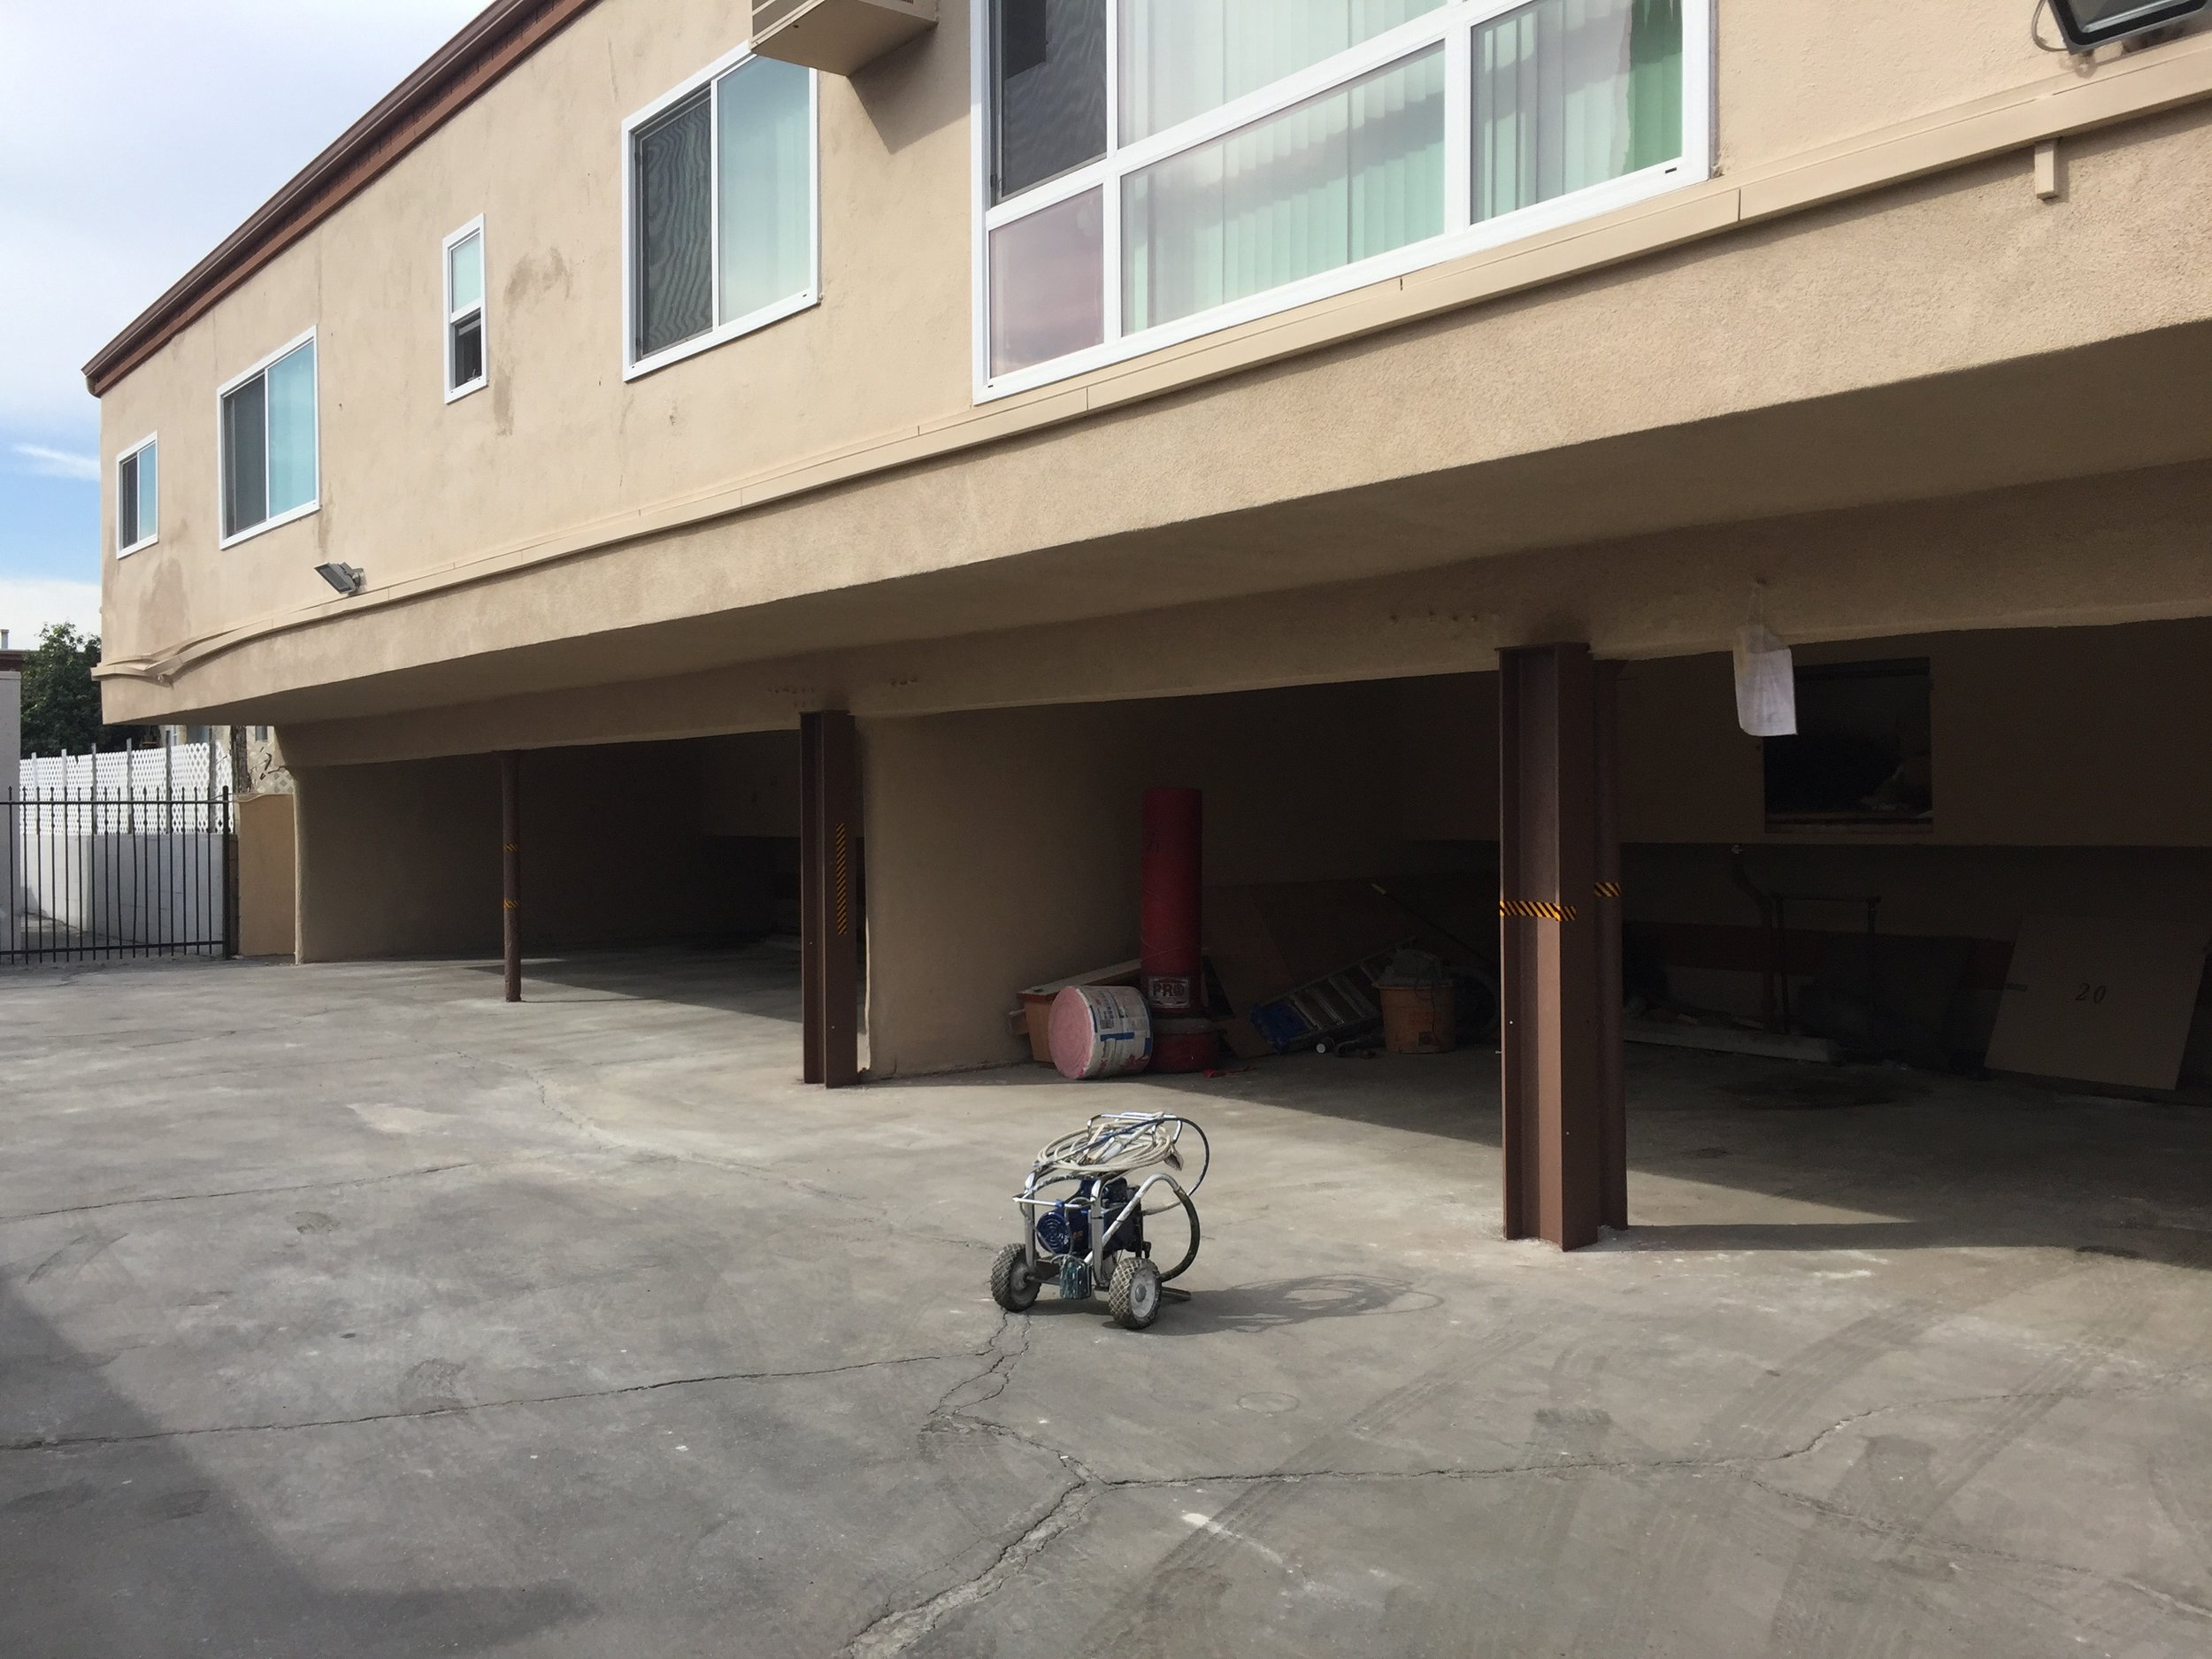 stucco repair and paint job